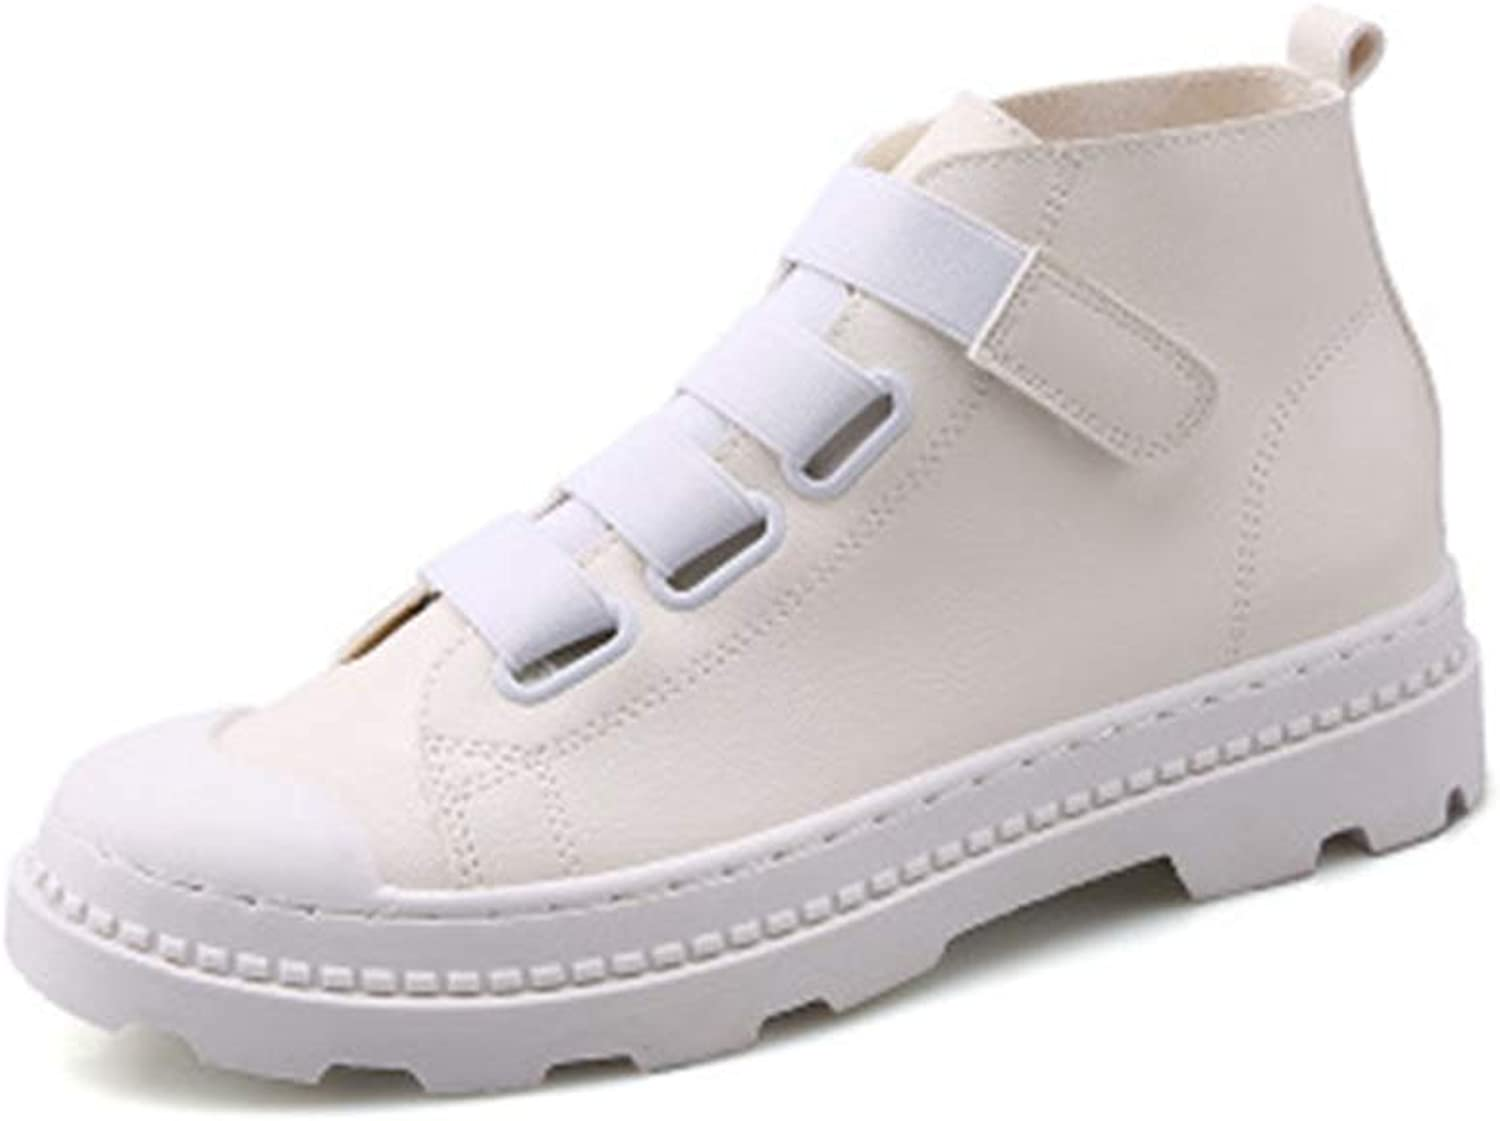 FORTUN Walking shoes high Canvas shoes Sneakers Women's Flat Casual shoes